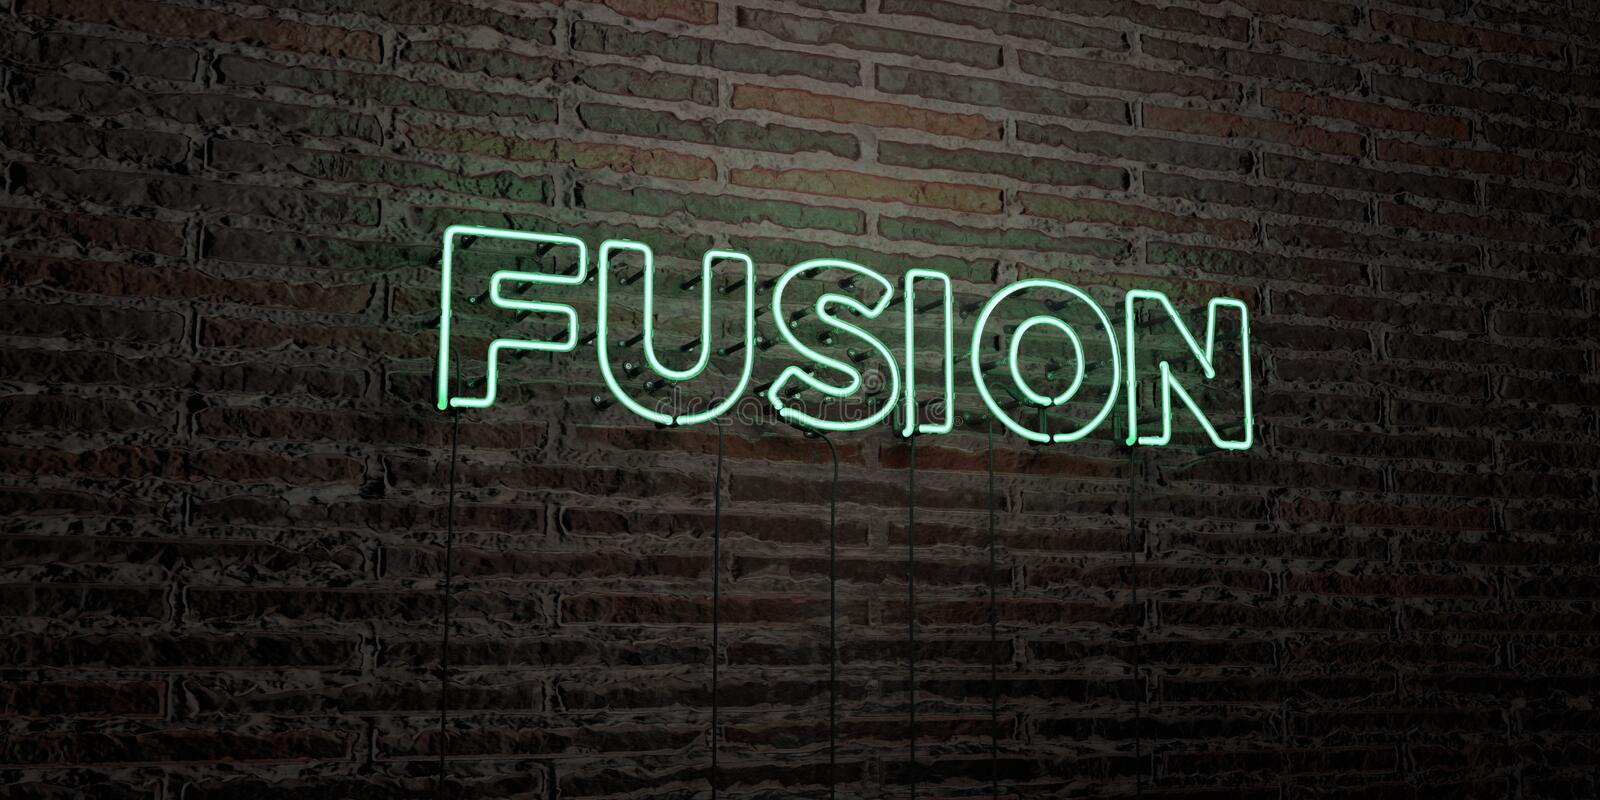 FUSION -Realistic Neon Sign on Brick Wall background - 3D rendered royalty free stock image vector illustration